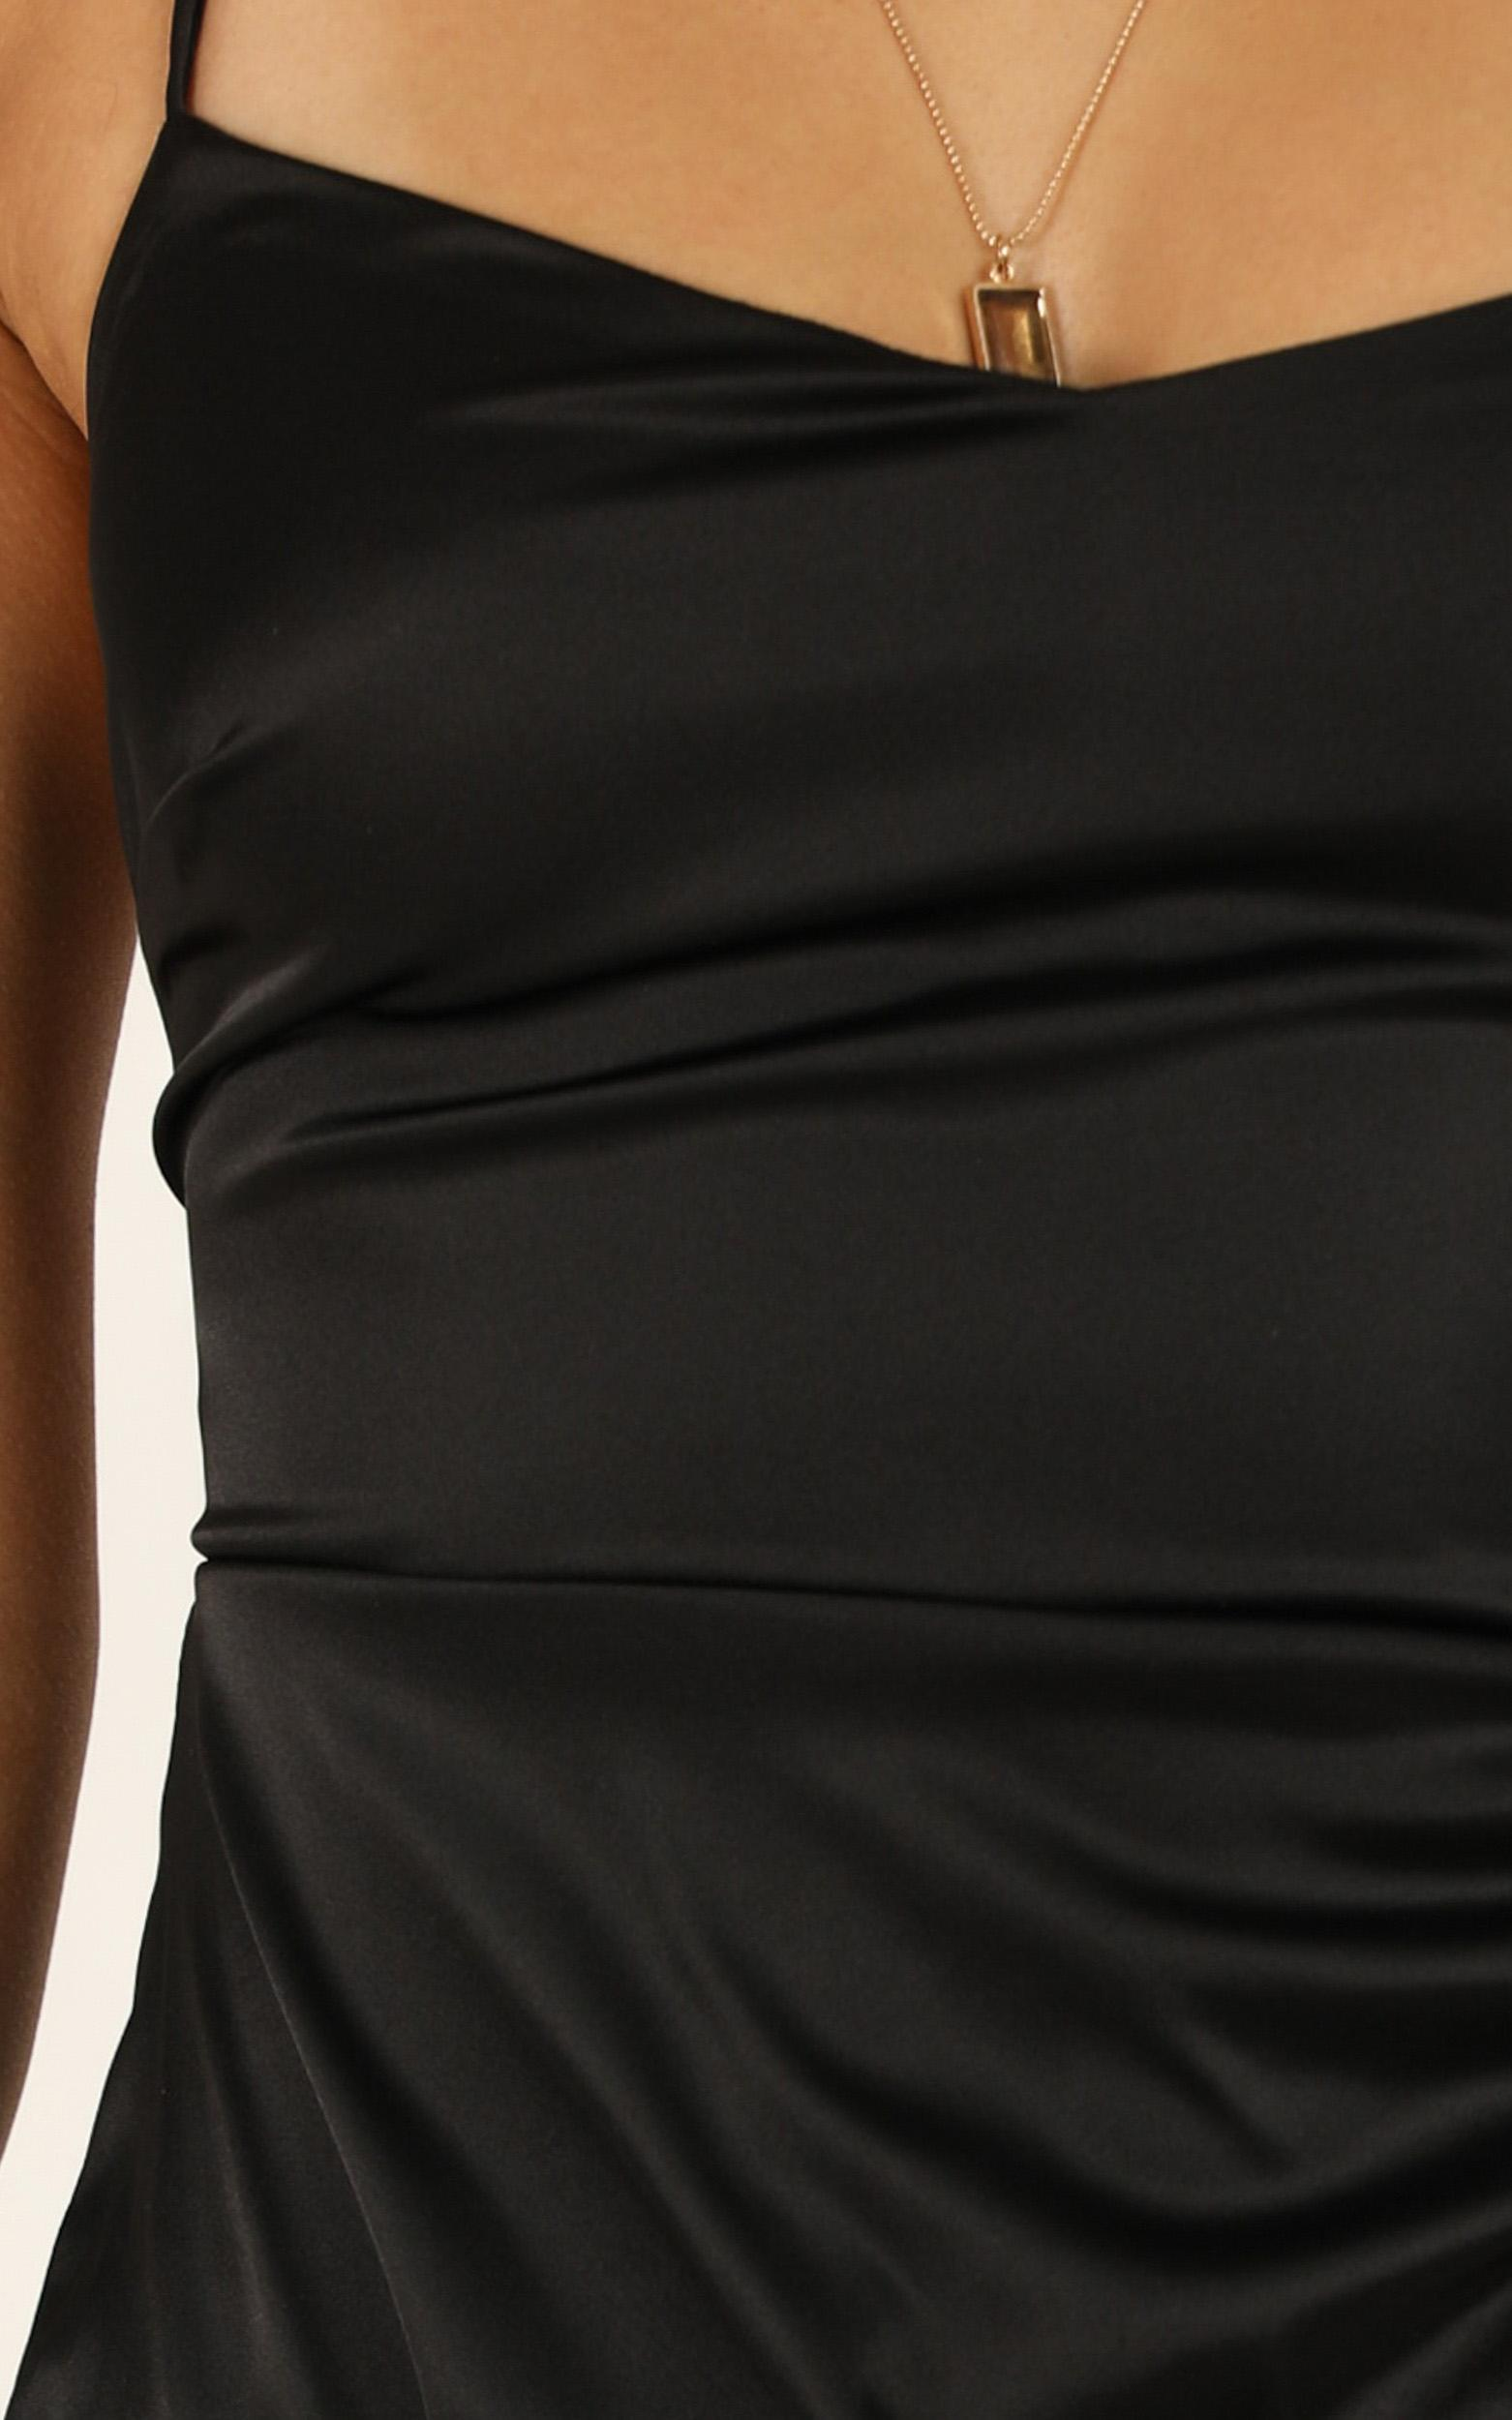 Look Like This Dress in black satin - 20 (XXXXL), Black, hi-res image number null